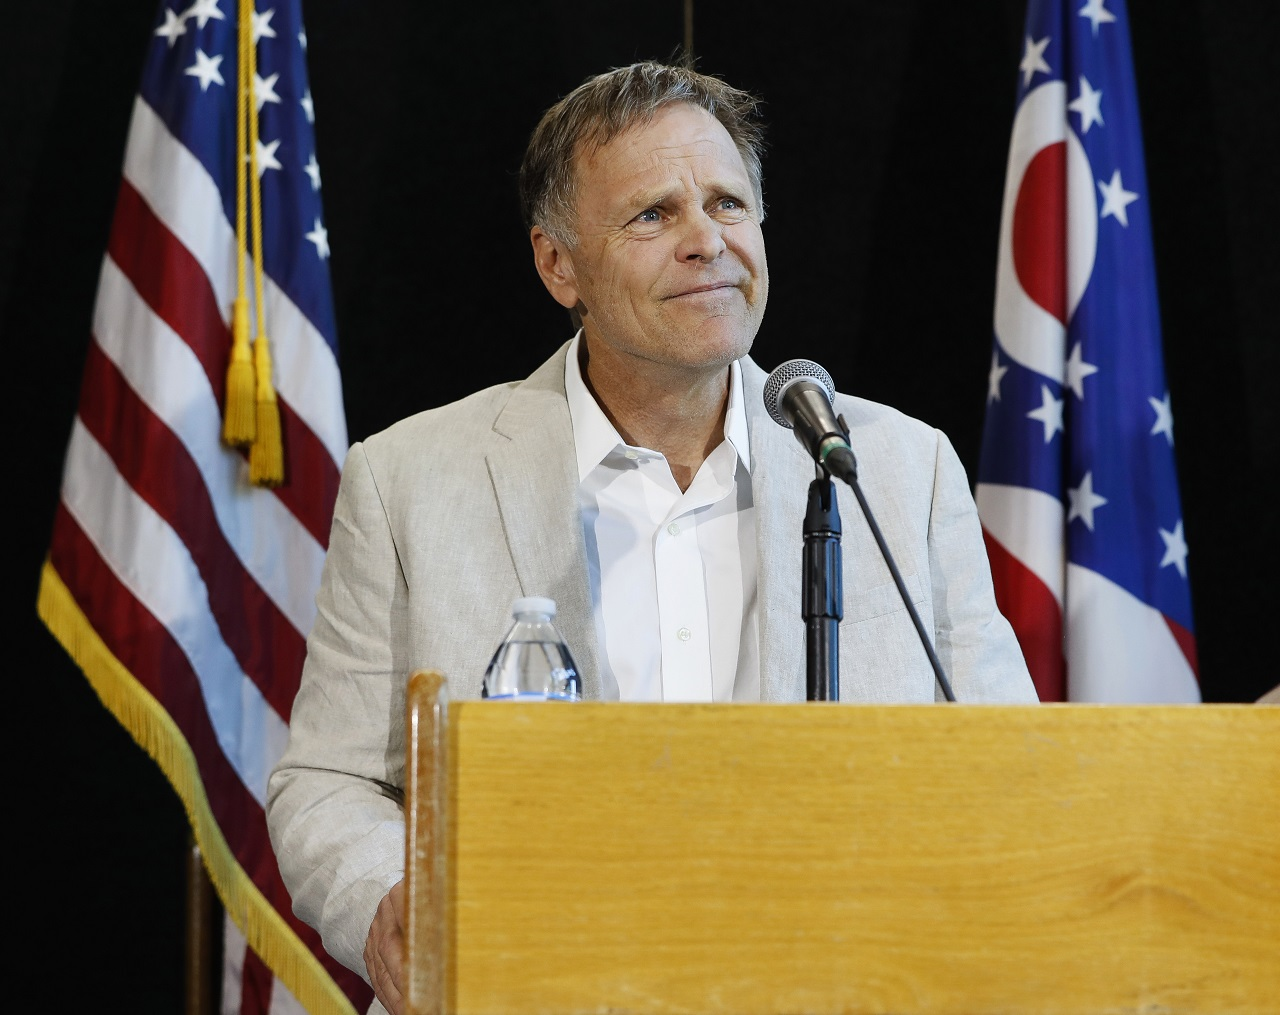 Fred Warmbier, father of Otto Warmbier, a University of Virginia undergraduate student who was imprisoned in North Korea in March 2016, speaks during a news conference, Thursday, June 15, 2017, at Wyoming High School in Cincinnati.